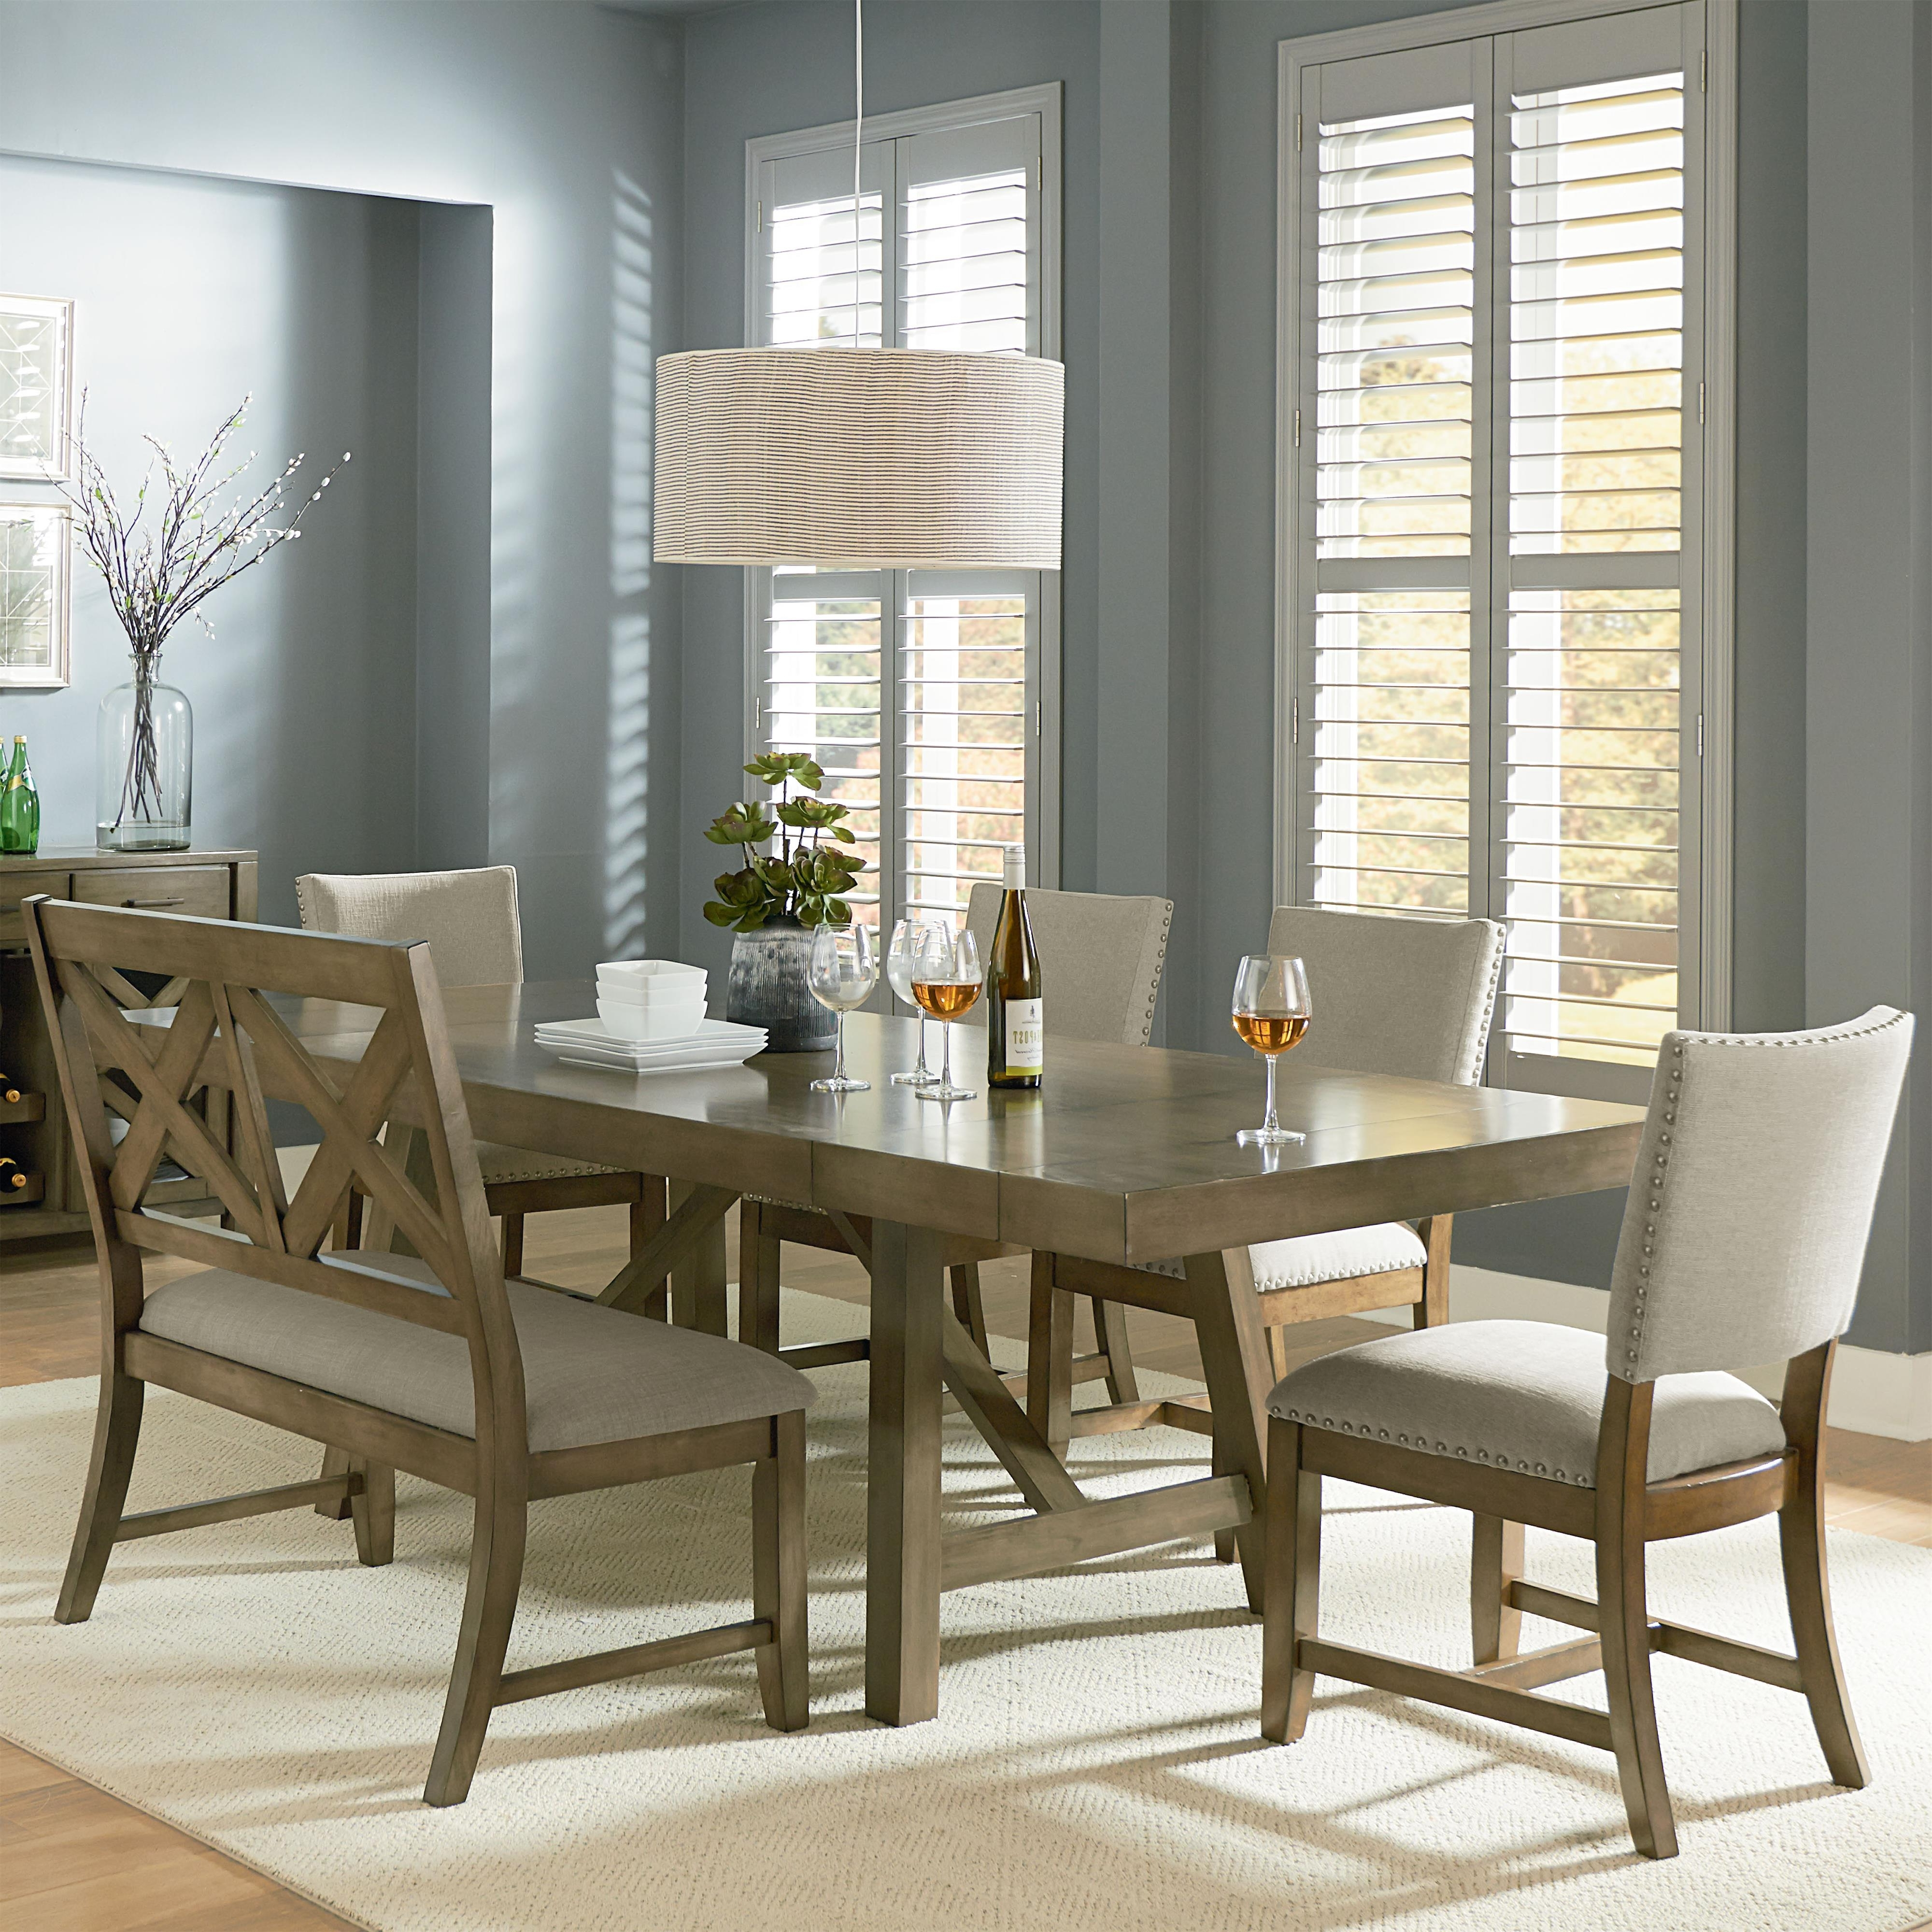 6 Piece Trestle Table Dining Set With Dining Benchstandard Regarding Most Current Parquet 6 Piece Dining Sets (View 3 of 25)